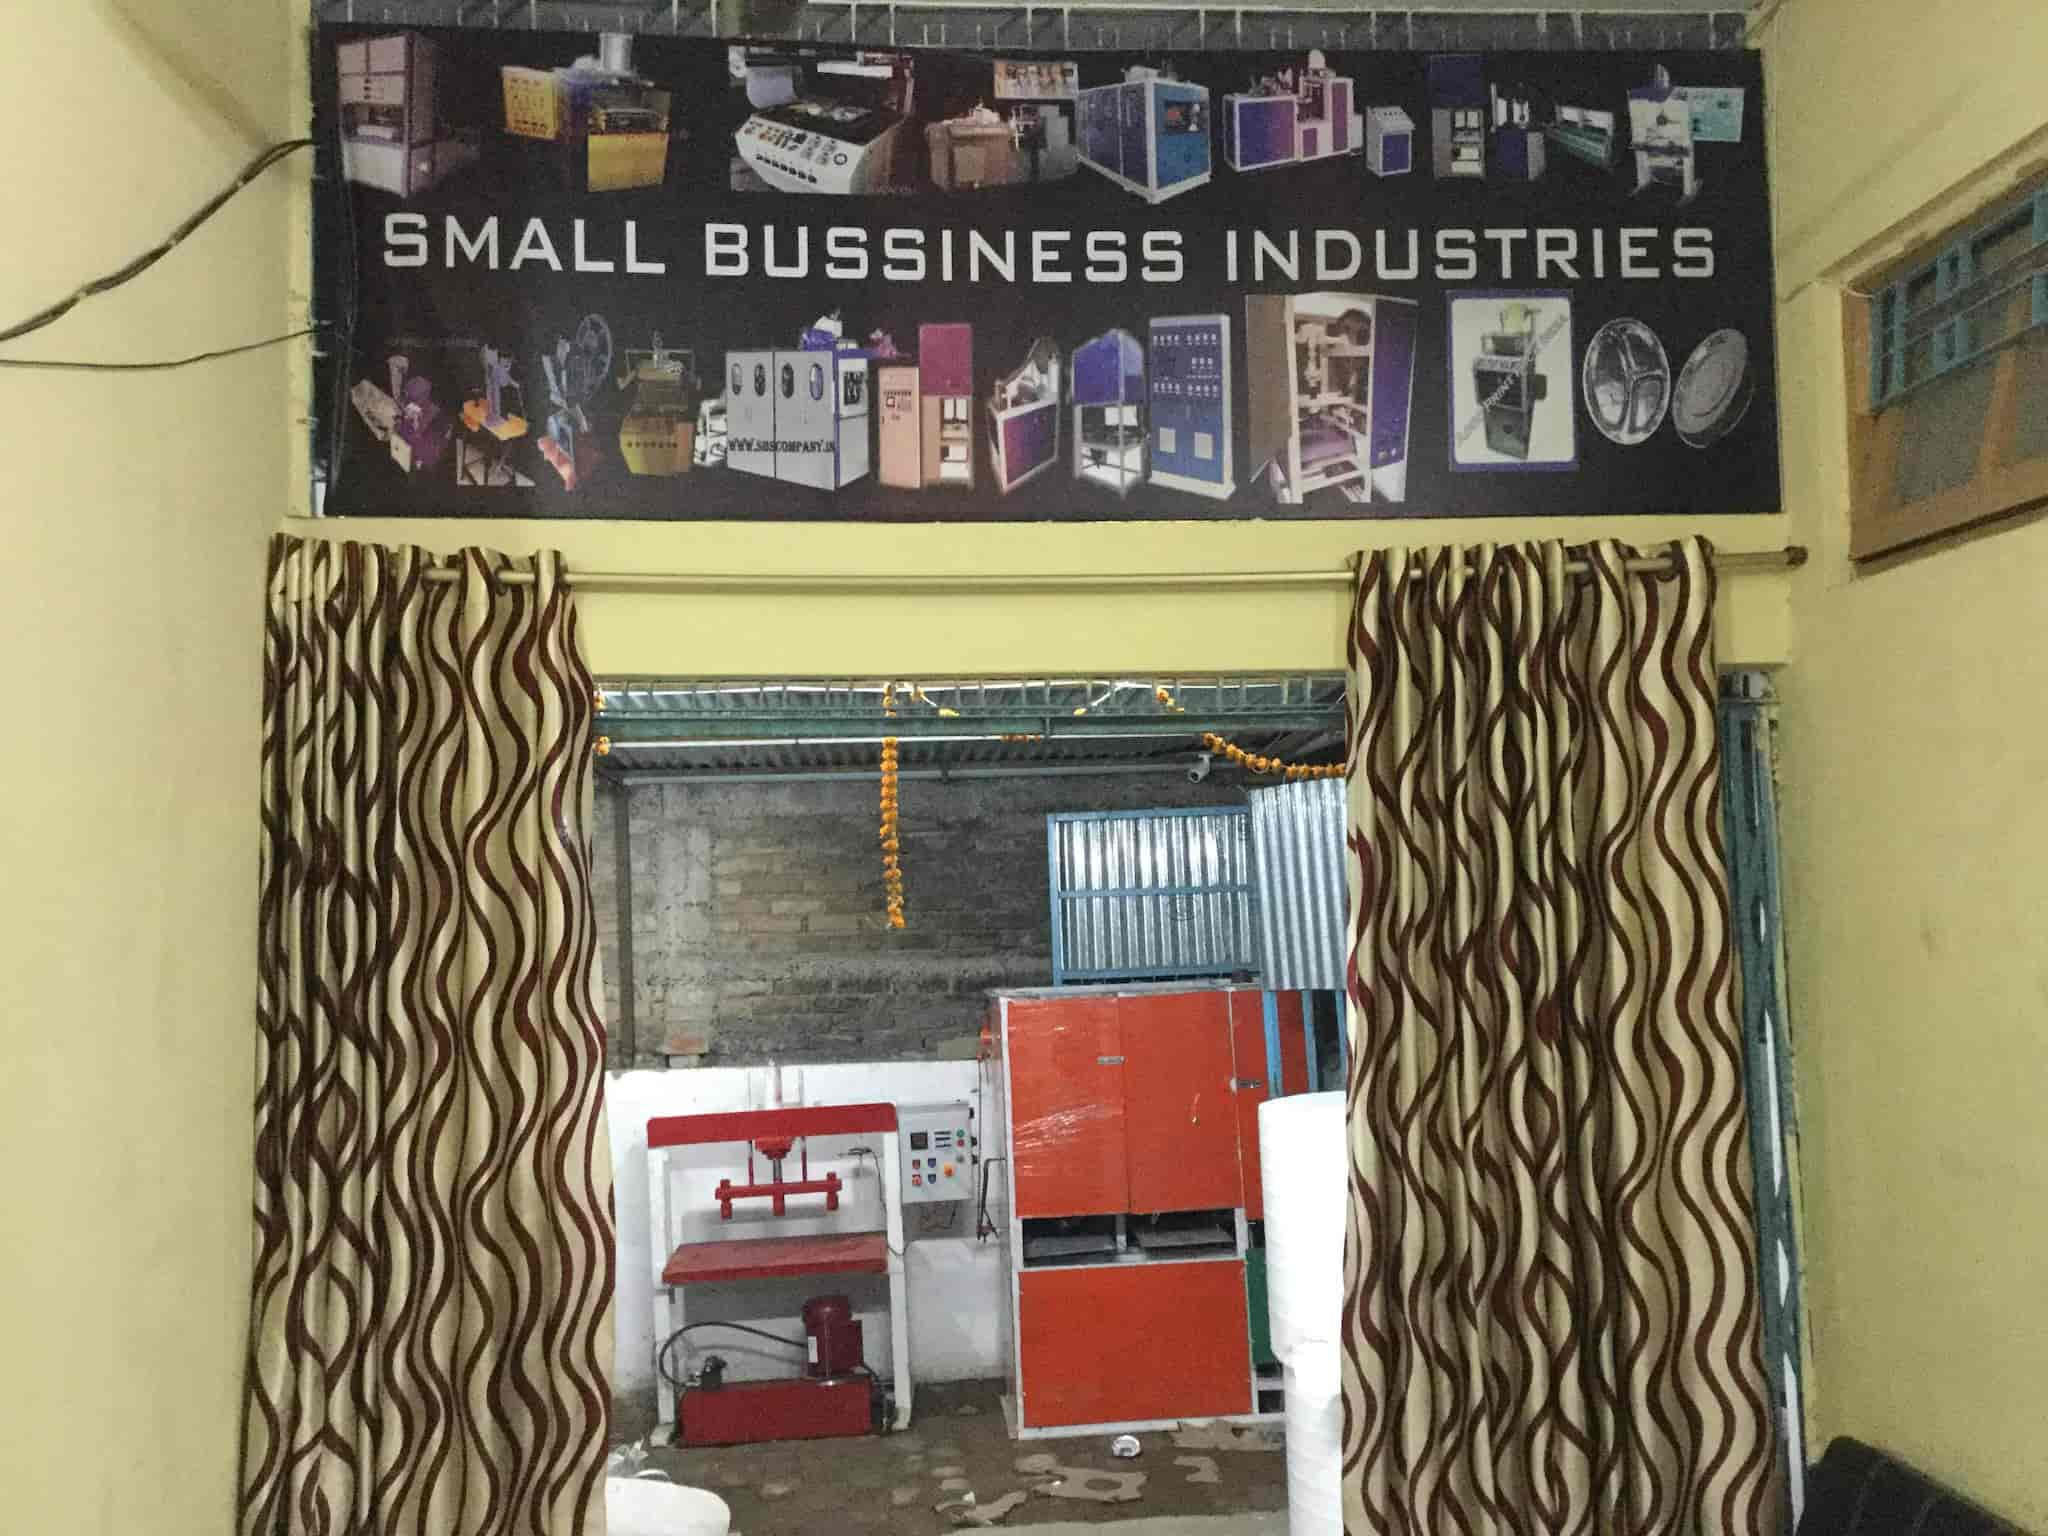 Small Business Industries & Small Business Industries Kankarbagh - Paper Plate Making Machine ...